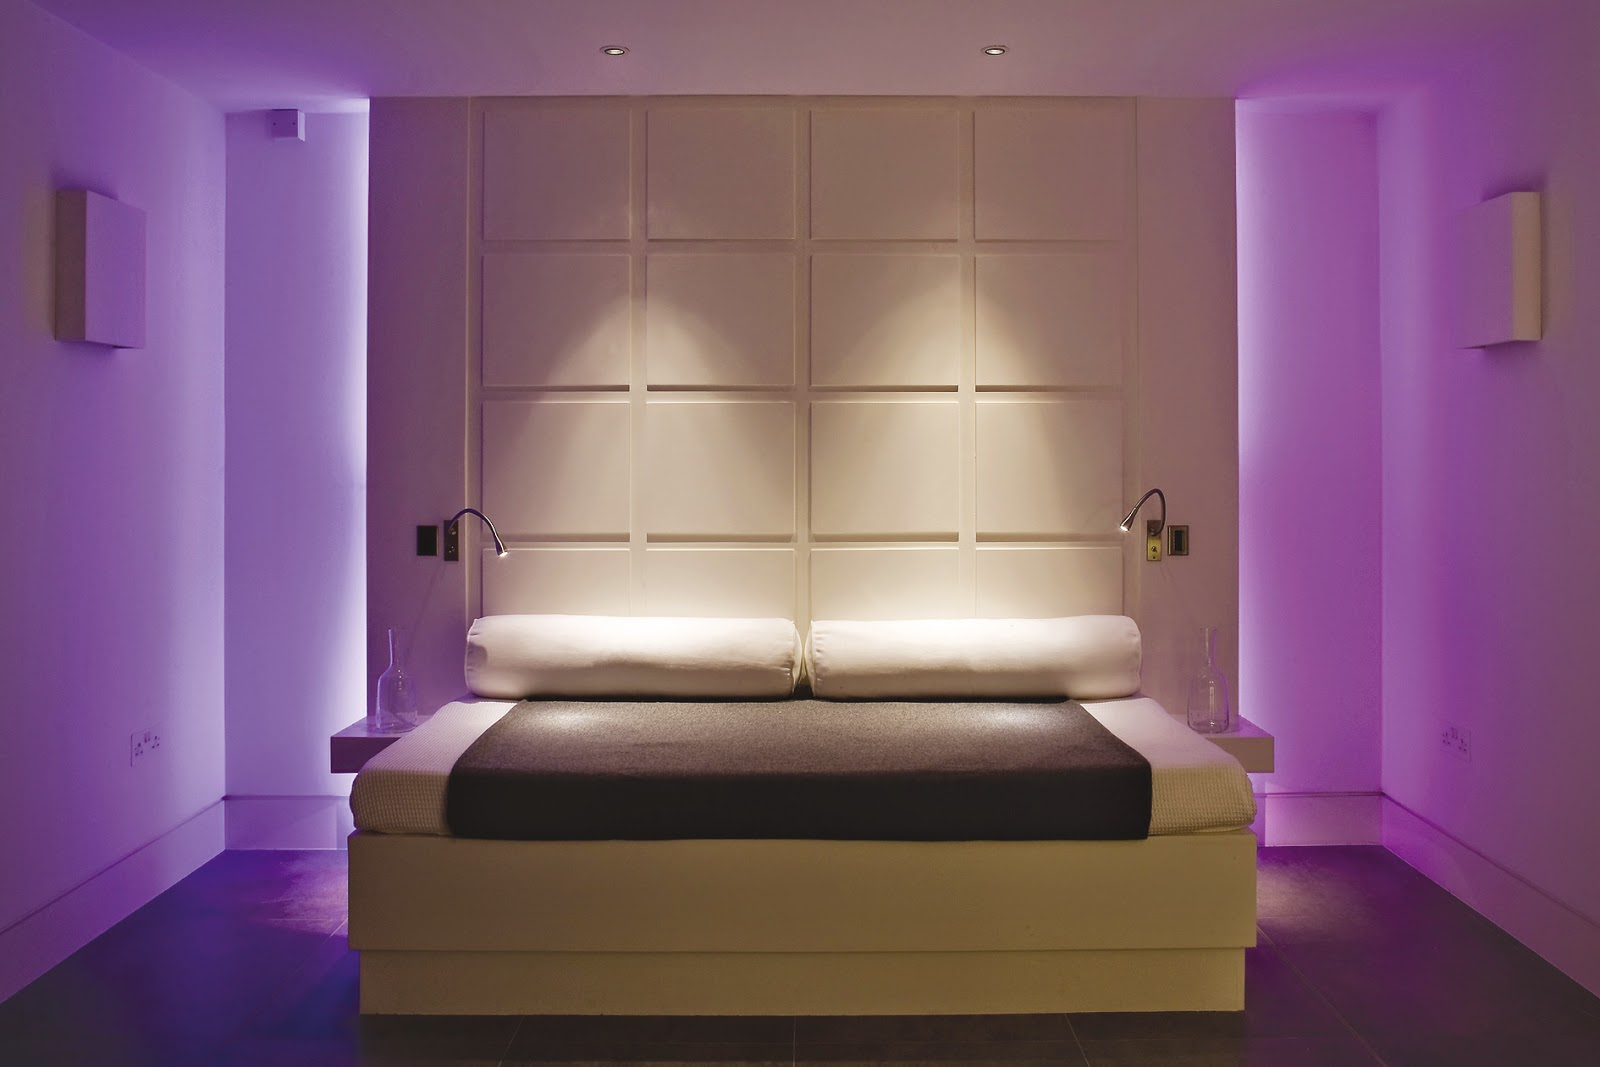 Foundation dezin decor wall washer lights for Cool lamps for bedroom